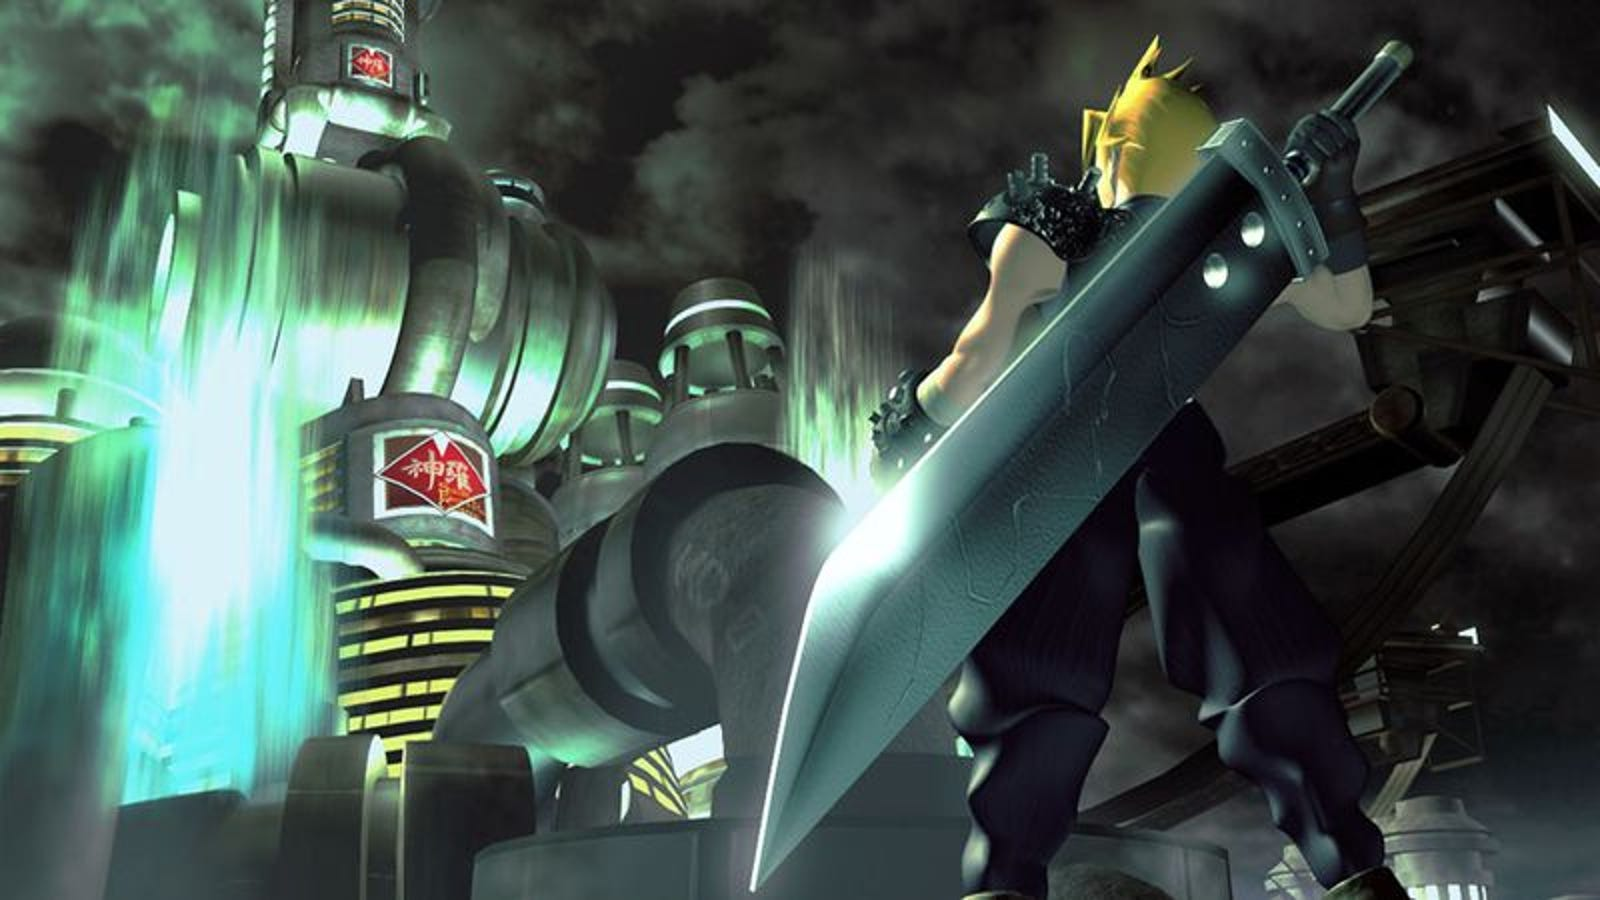 20 years after its release, Final Fantasy VII's Trumpian